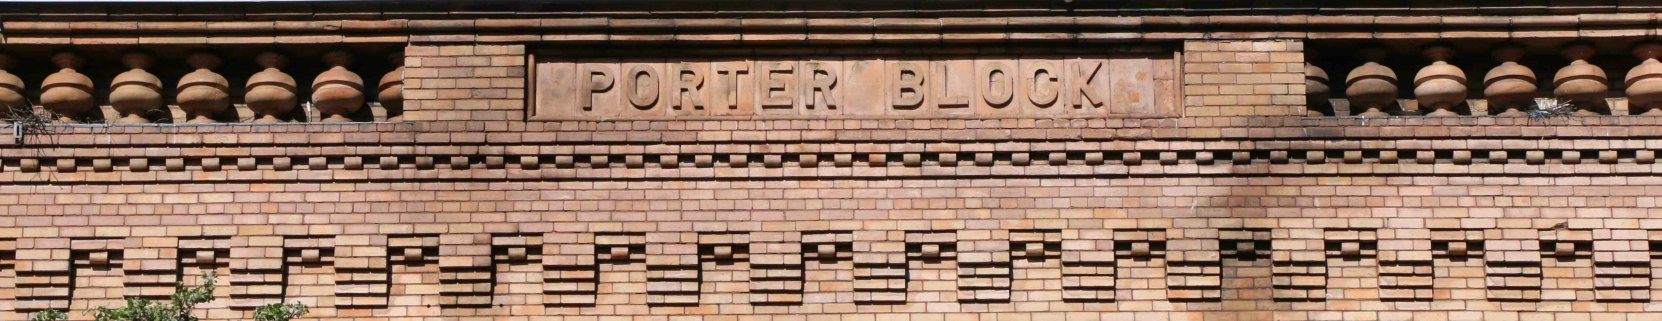 Our web header photo for the Porter Block at 1402-1406 Douglas Street shows the brickwork at the building's cornice.